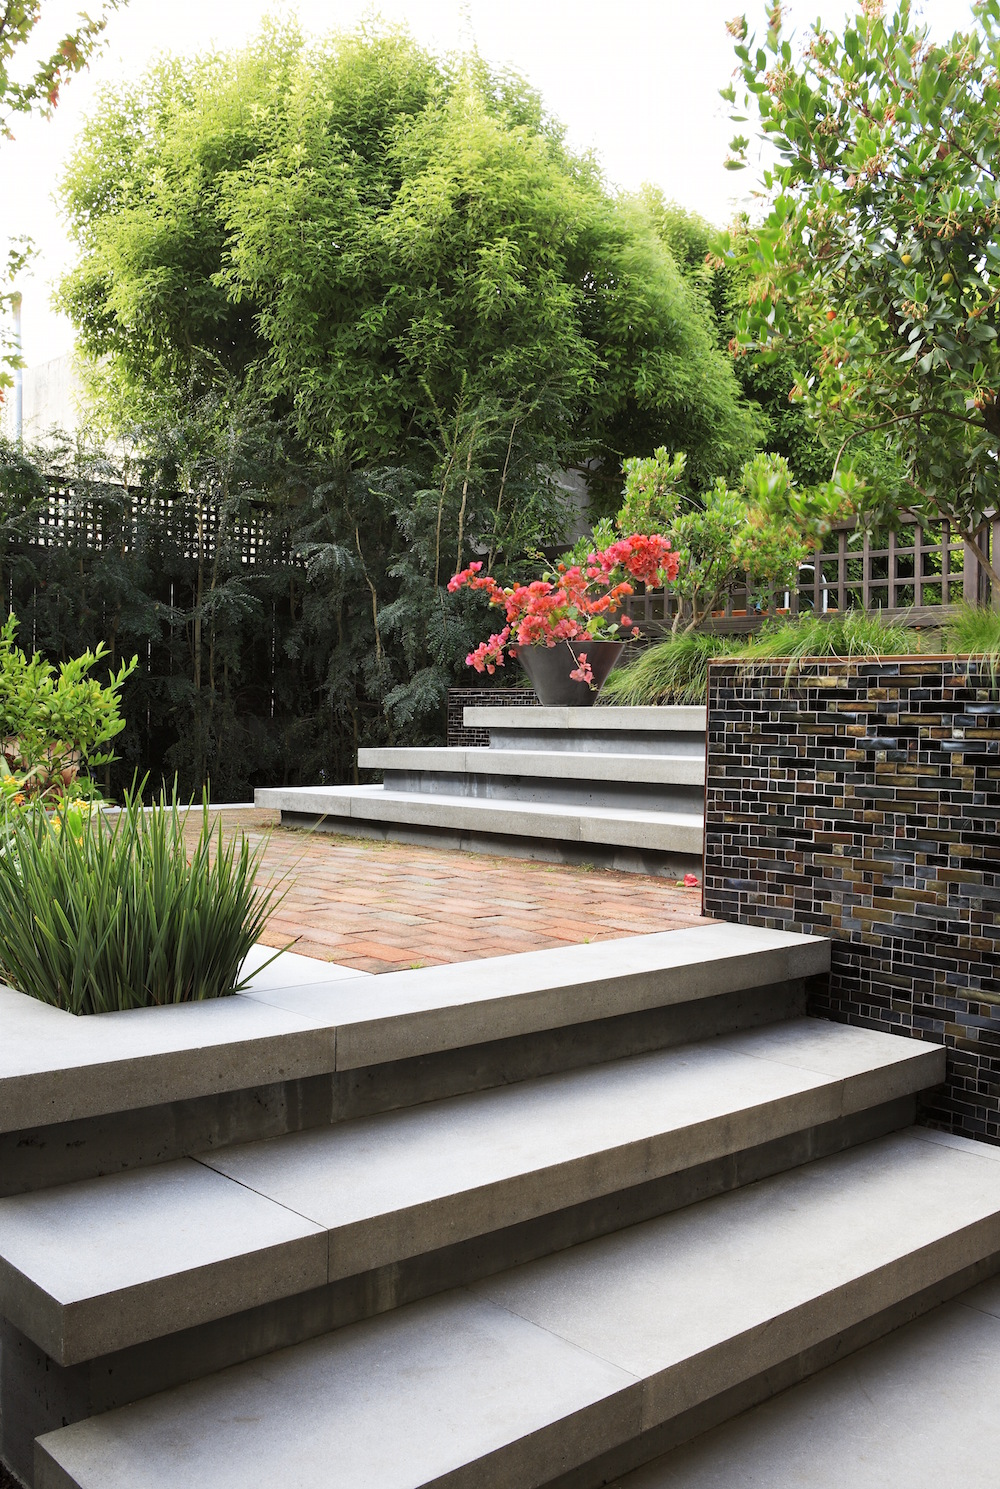 Floating Plans by Arterra Landscape Architects Photo by Michele Lee Willson